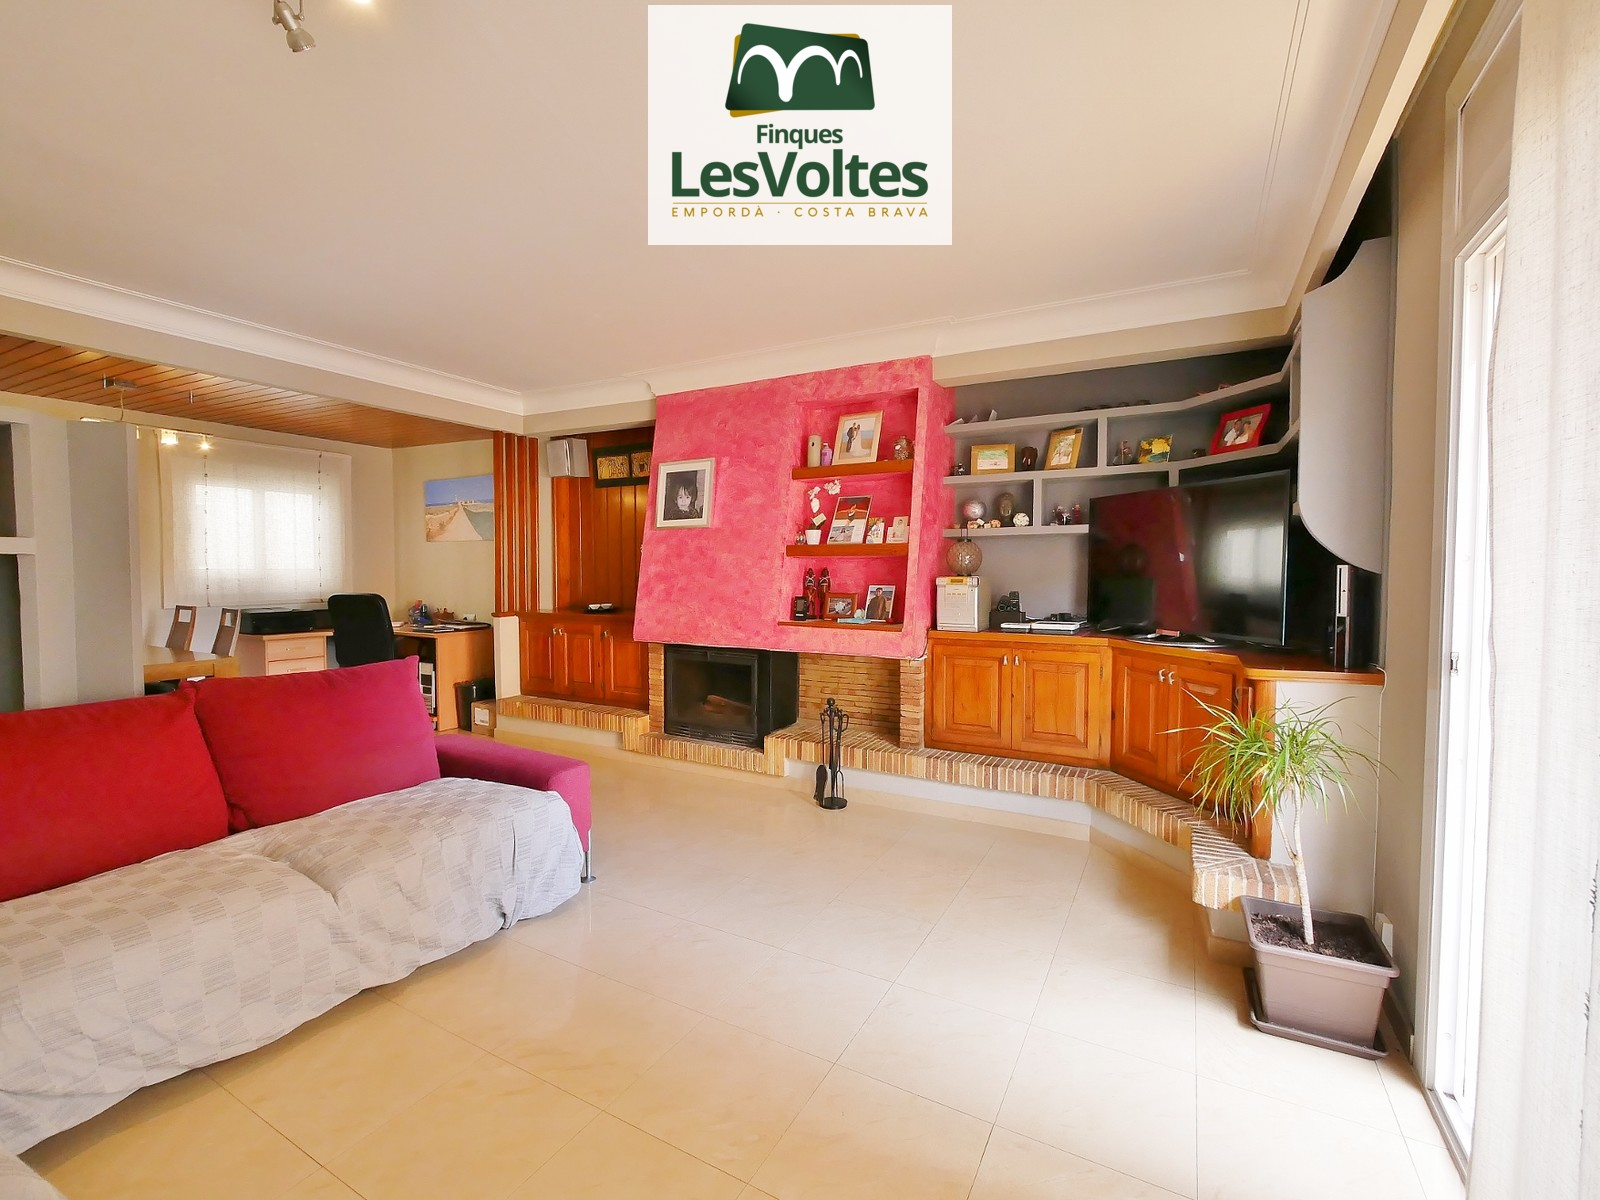 SPACIOUS 105M2 APARTMENT IN A QUIET RESIDENTIAL AREA VERY CLOSE TO THE CENTER. PARKING SPACE AND STORAGE ROOM INCLUDED.